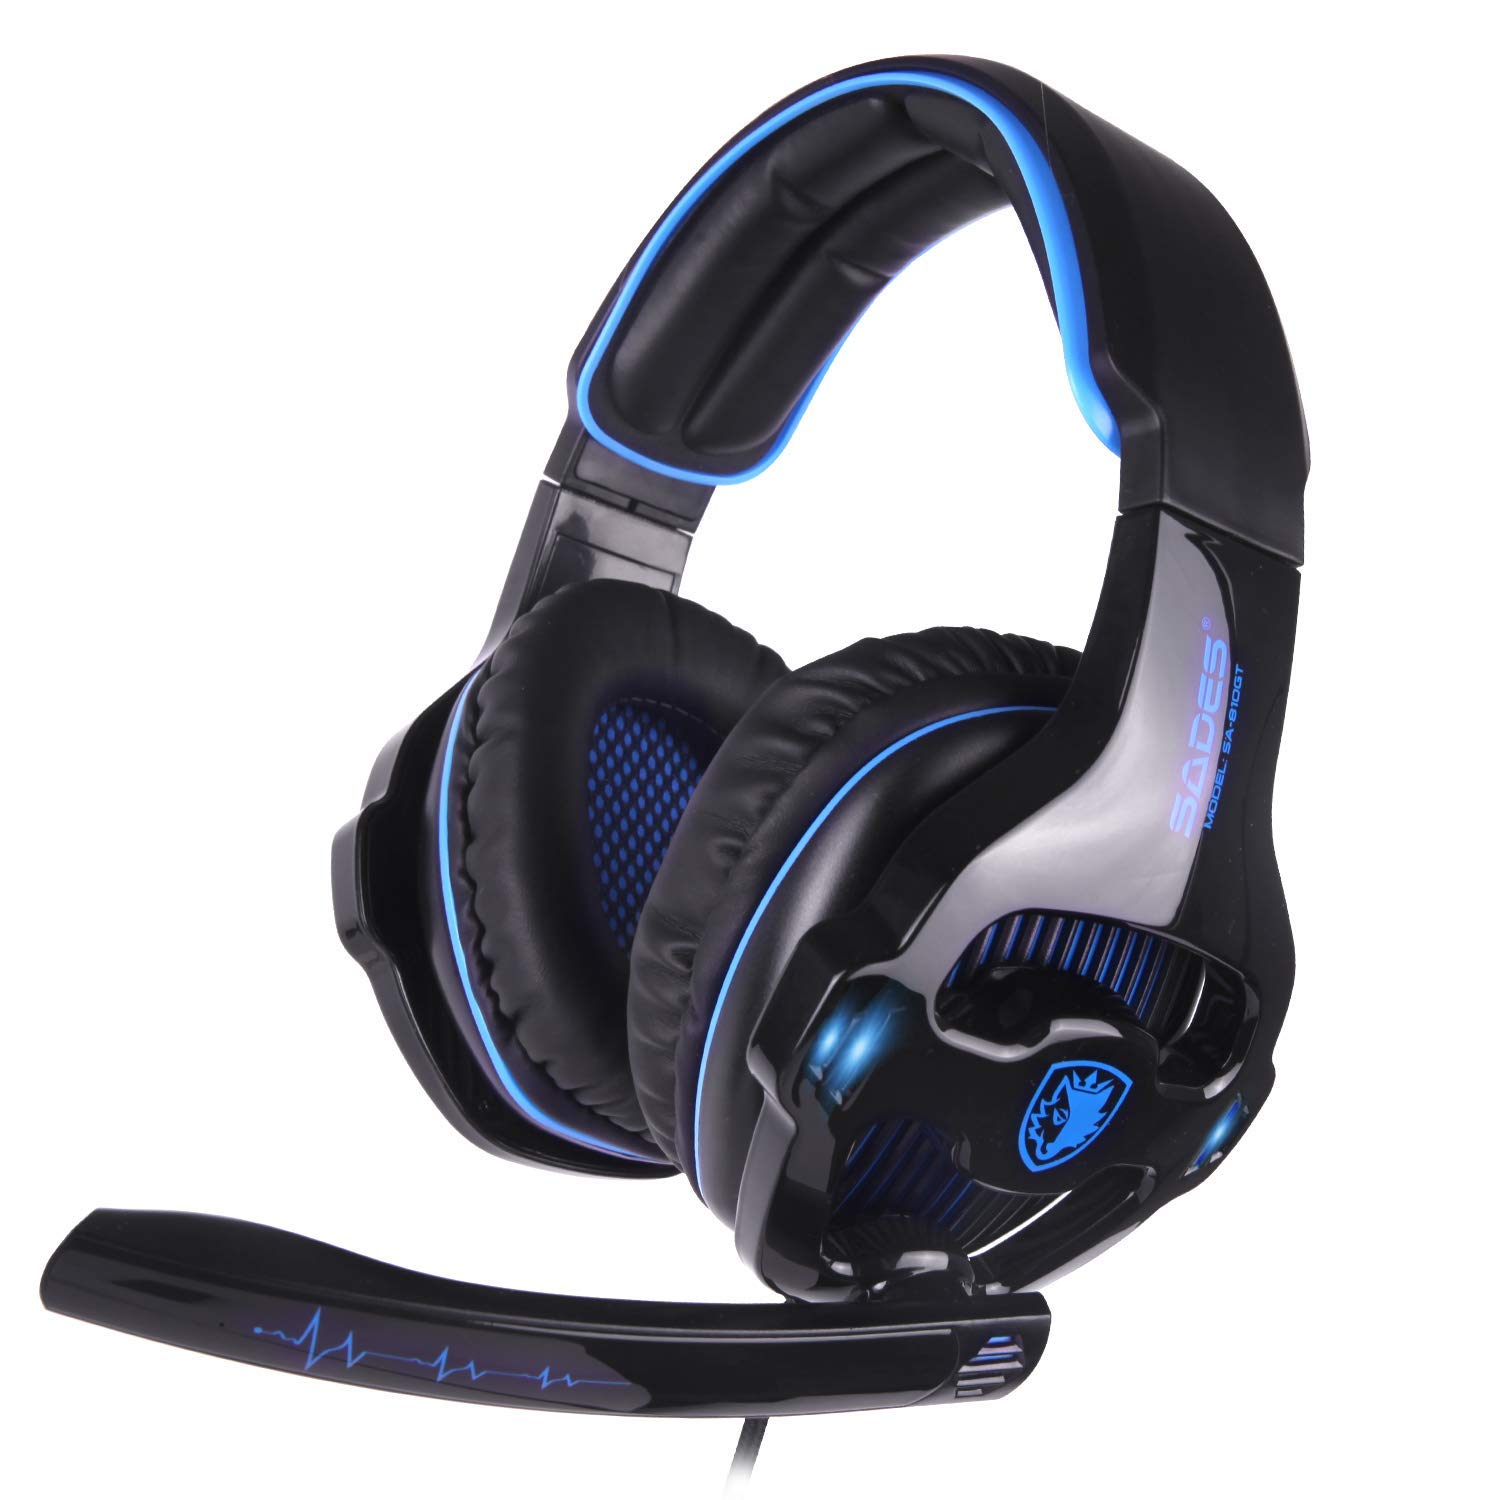 Auriculares Gamer : SADES SA810GT para Xbox One/PS4/PC Noise